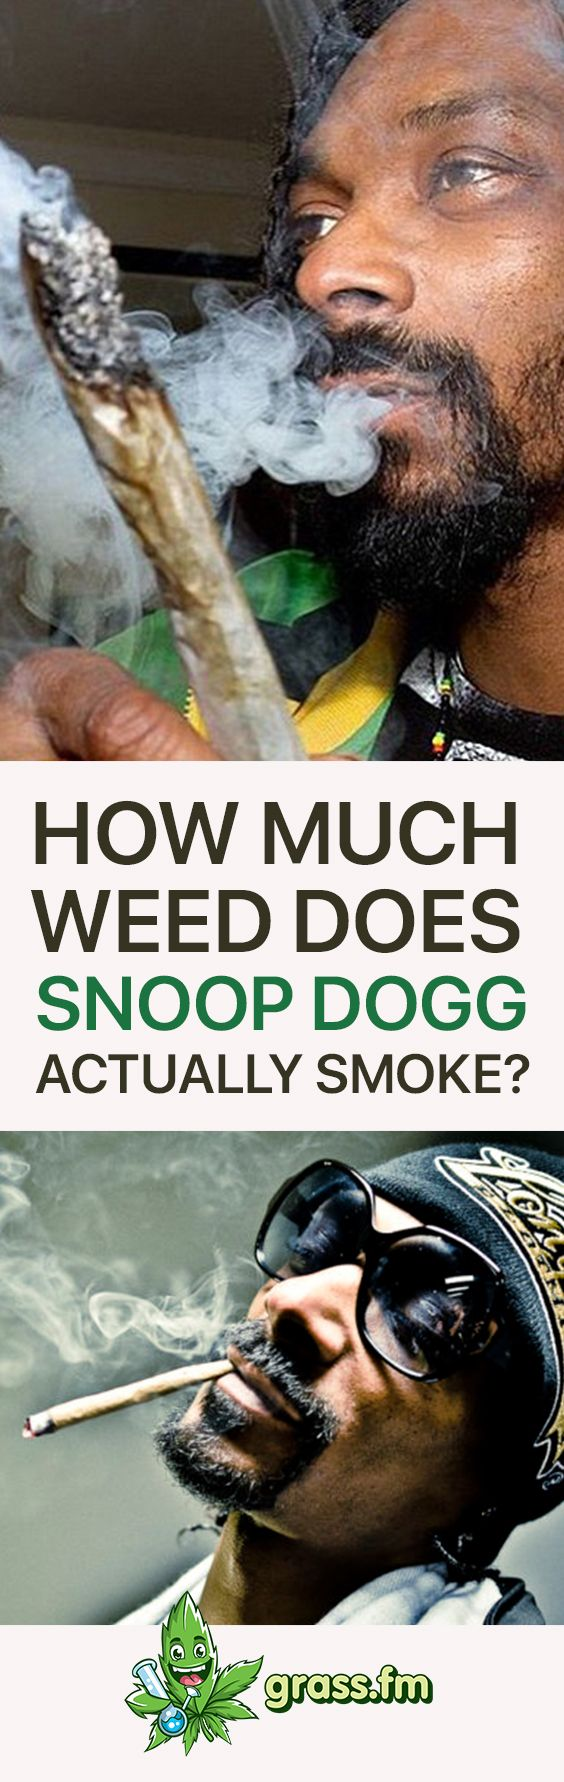 Click here to learn how much weed snoop dogg ACTUALLY smokes #marijuana #weed #cannabis #cannabiscommunity